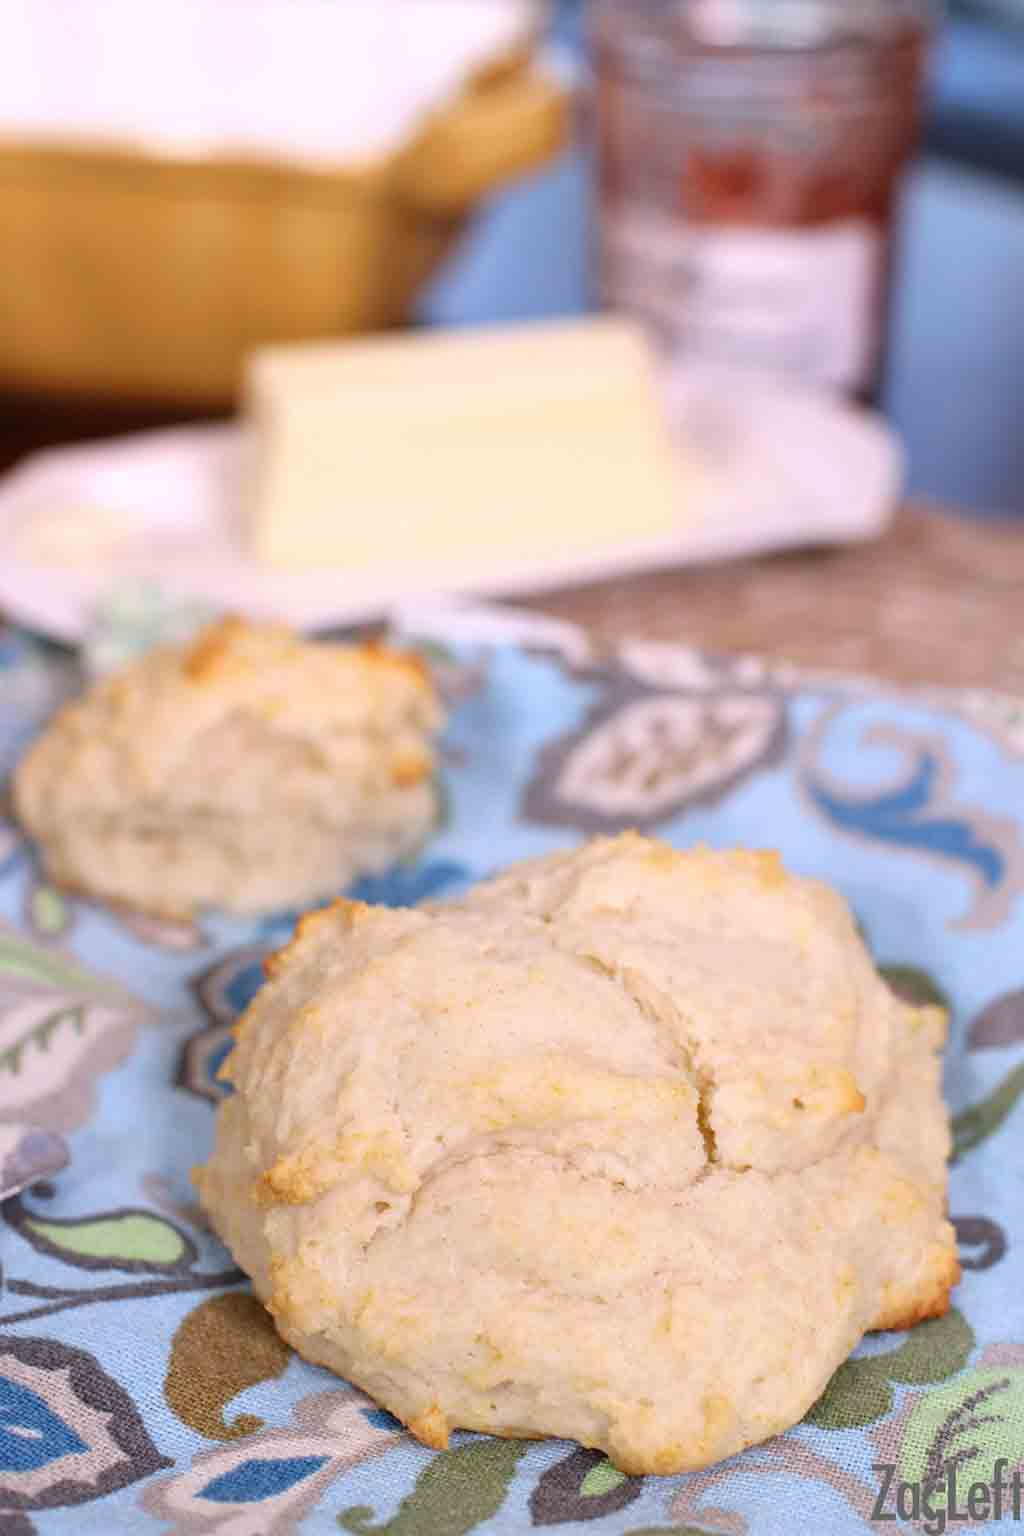 A closeup of a biscuit with another biscuit and a stick of butter in the background all on a blue cloth napkin